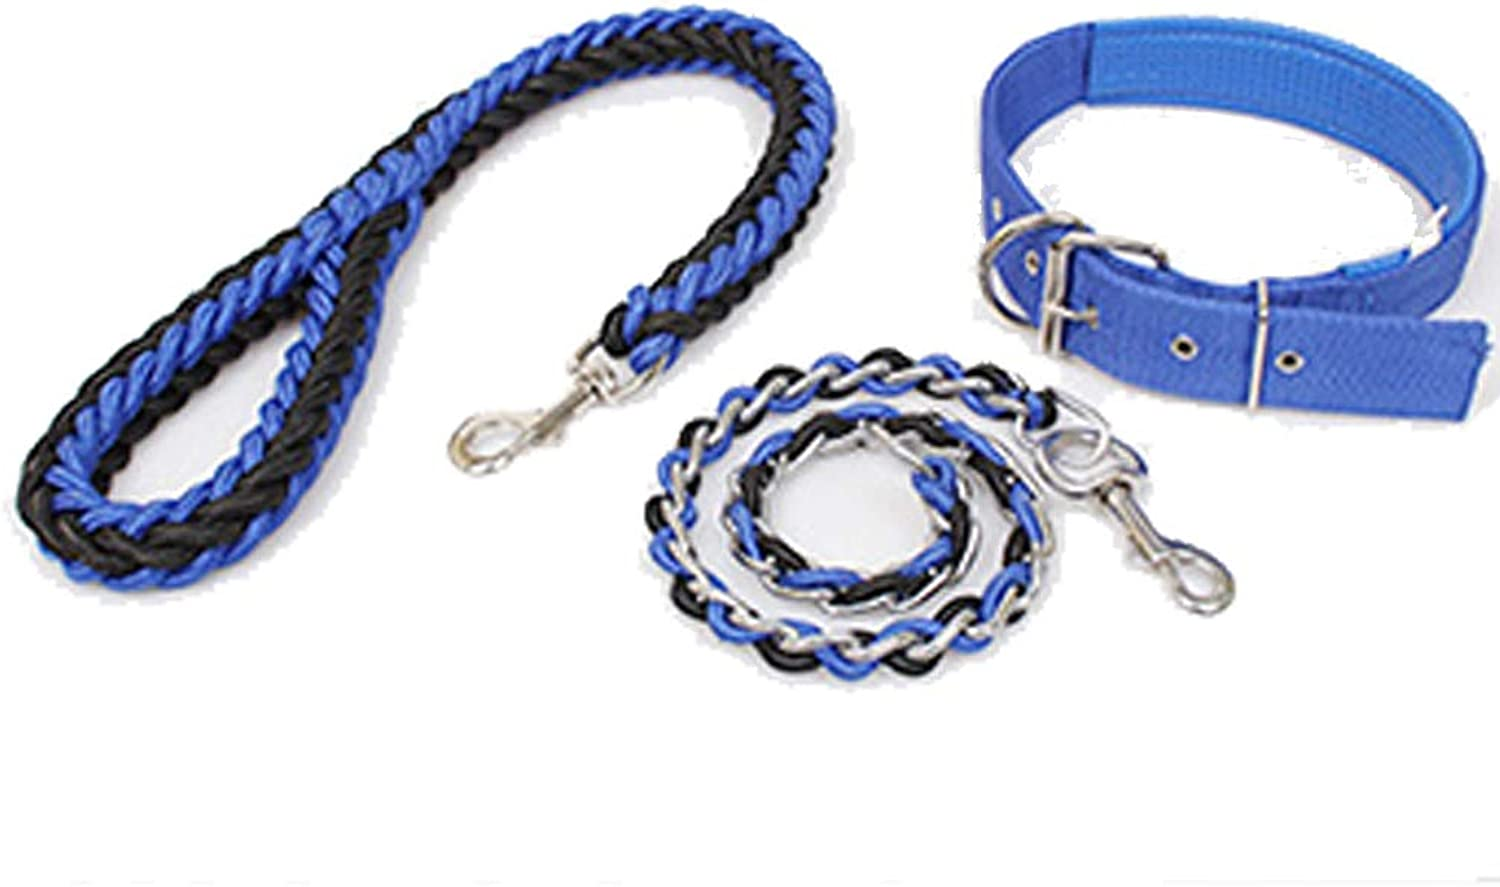 Dog Chain Pet Supplies MultiFunction Dog Leash Rope Pet Rope Braided Chain Tie Leash Dog Adjustable Dog Strap